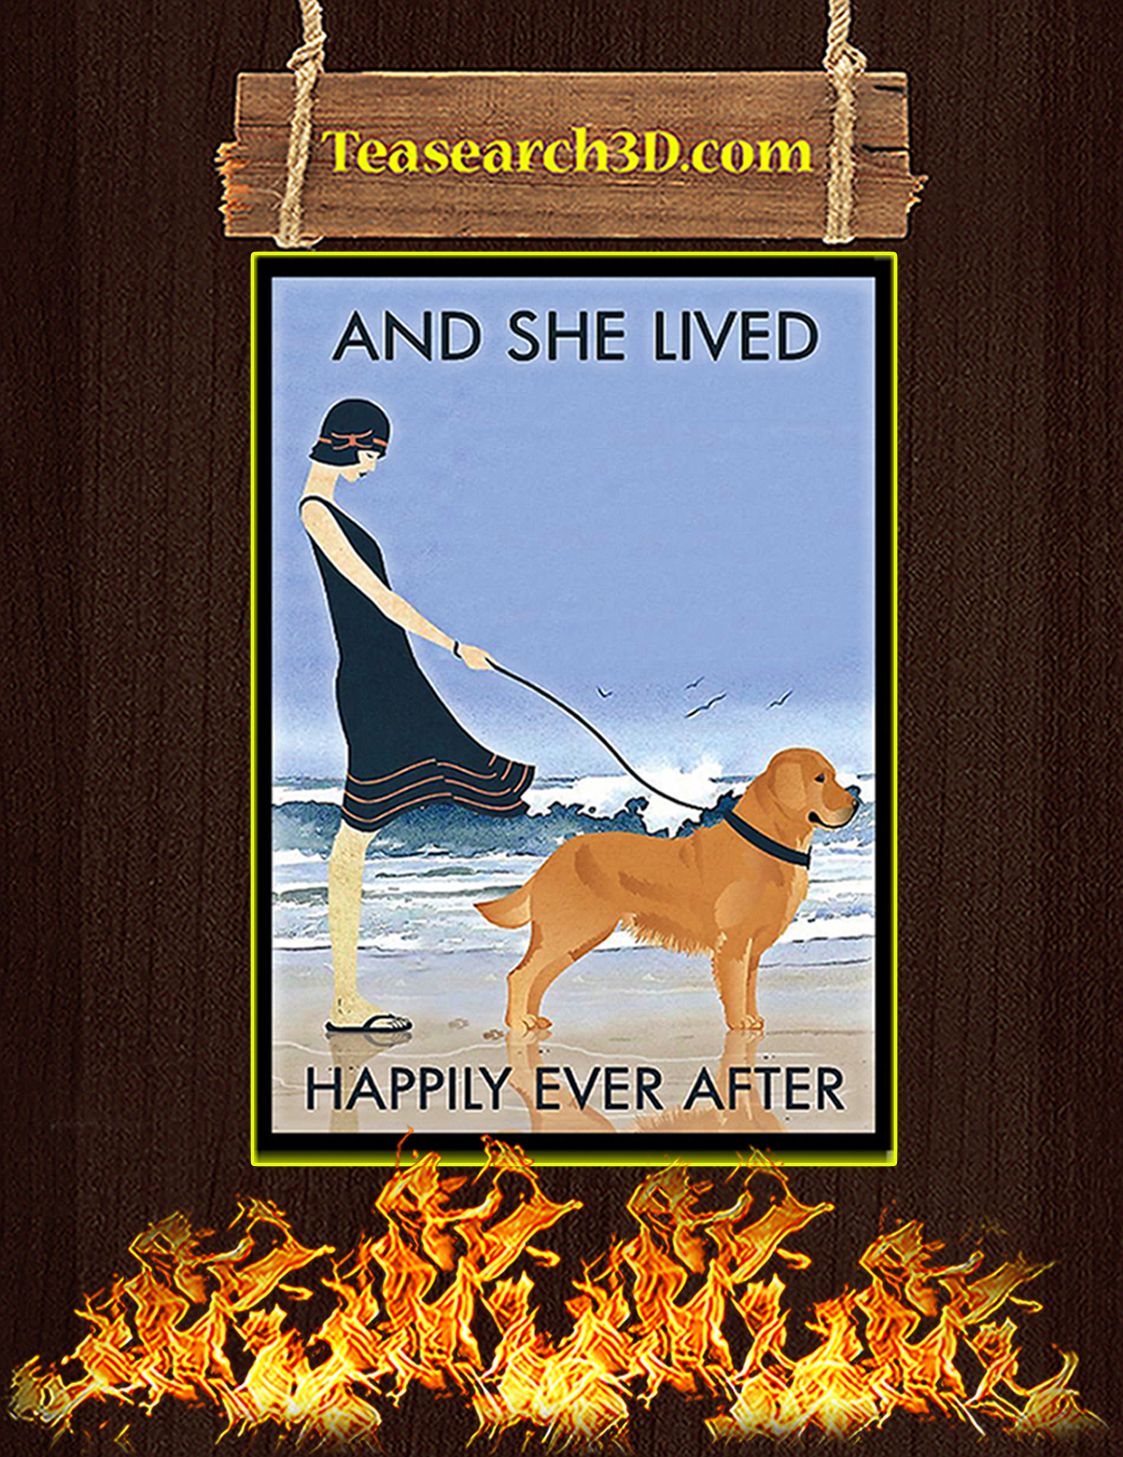 Golden Retriever And she lived happily ever after poster A3